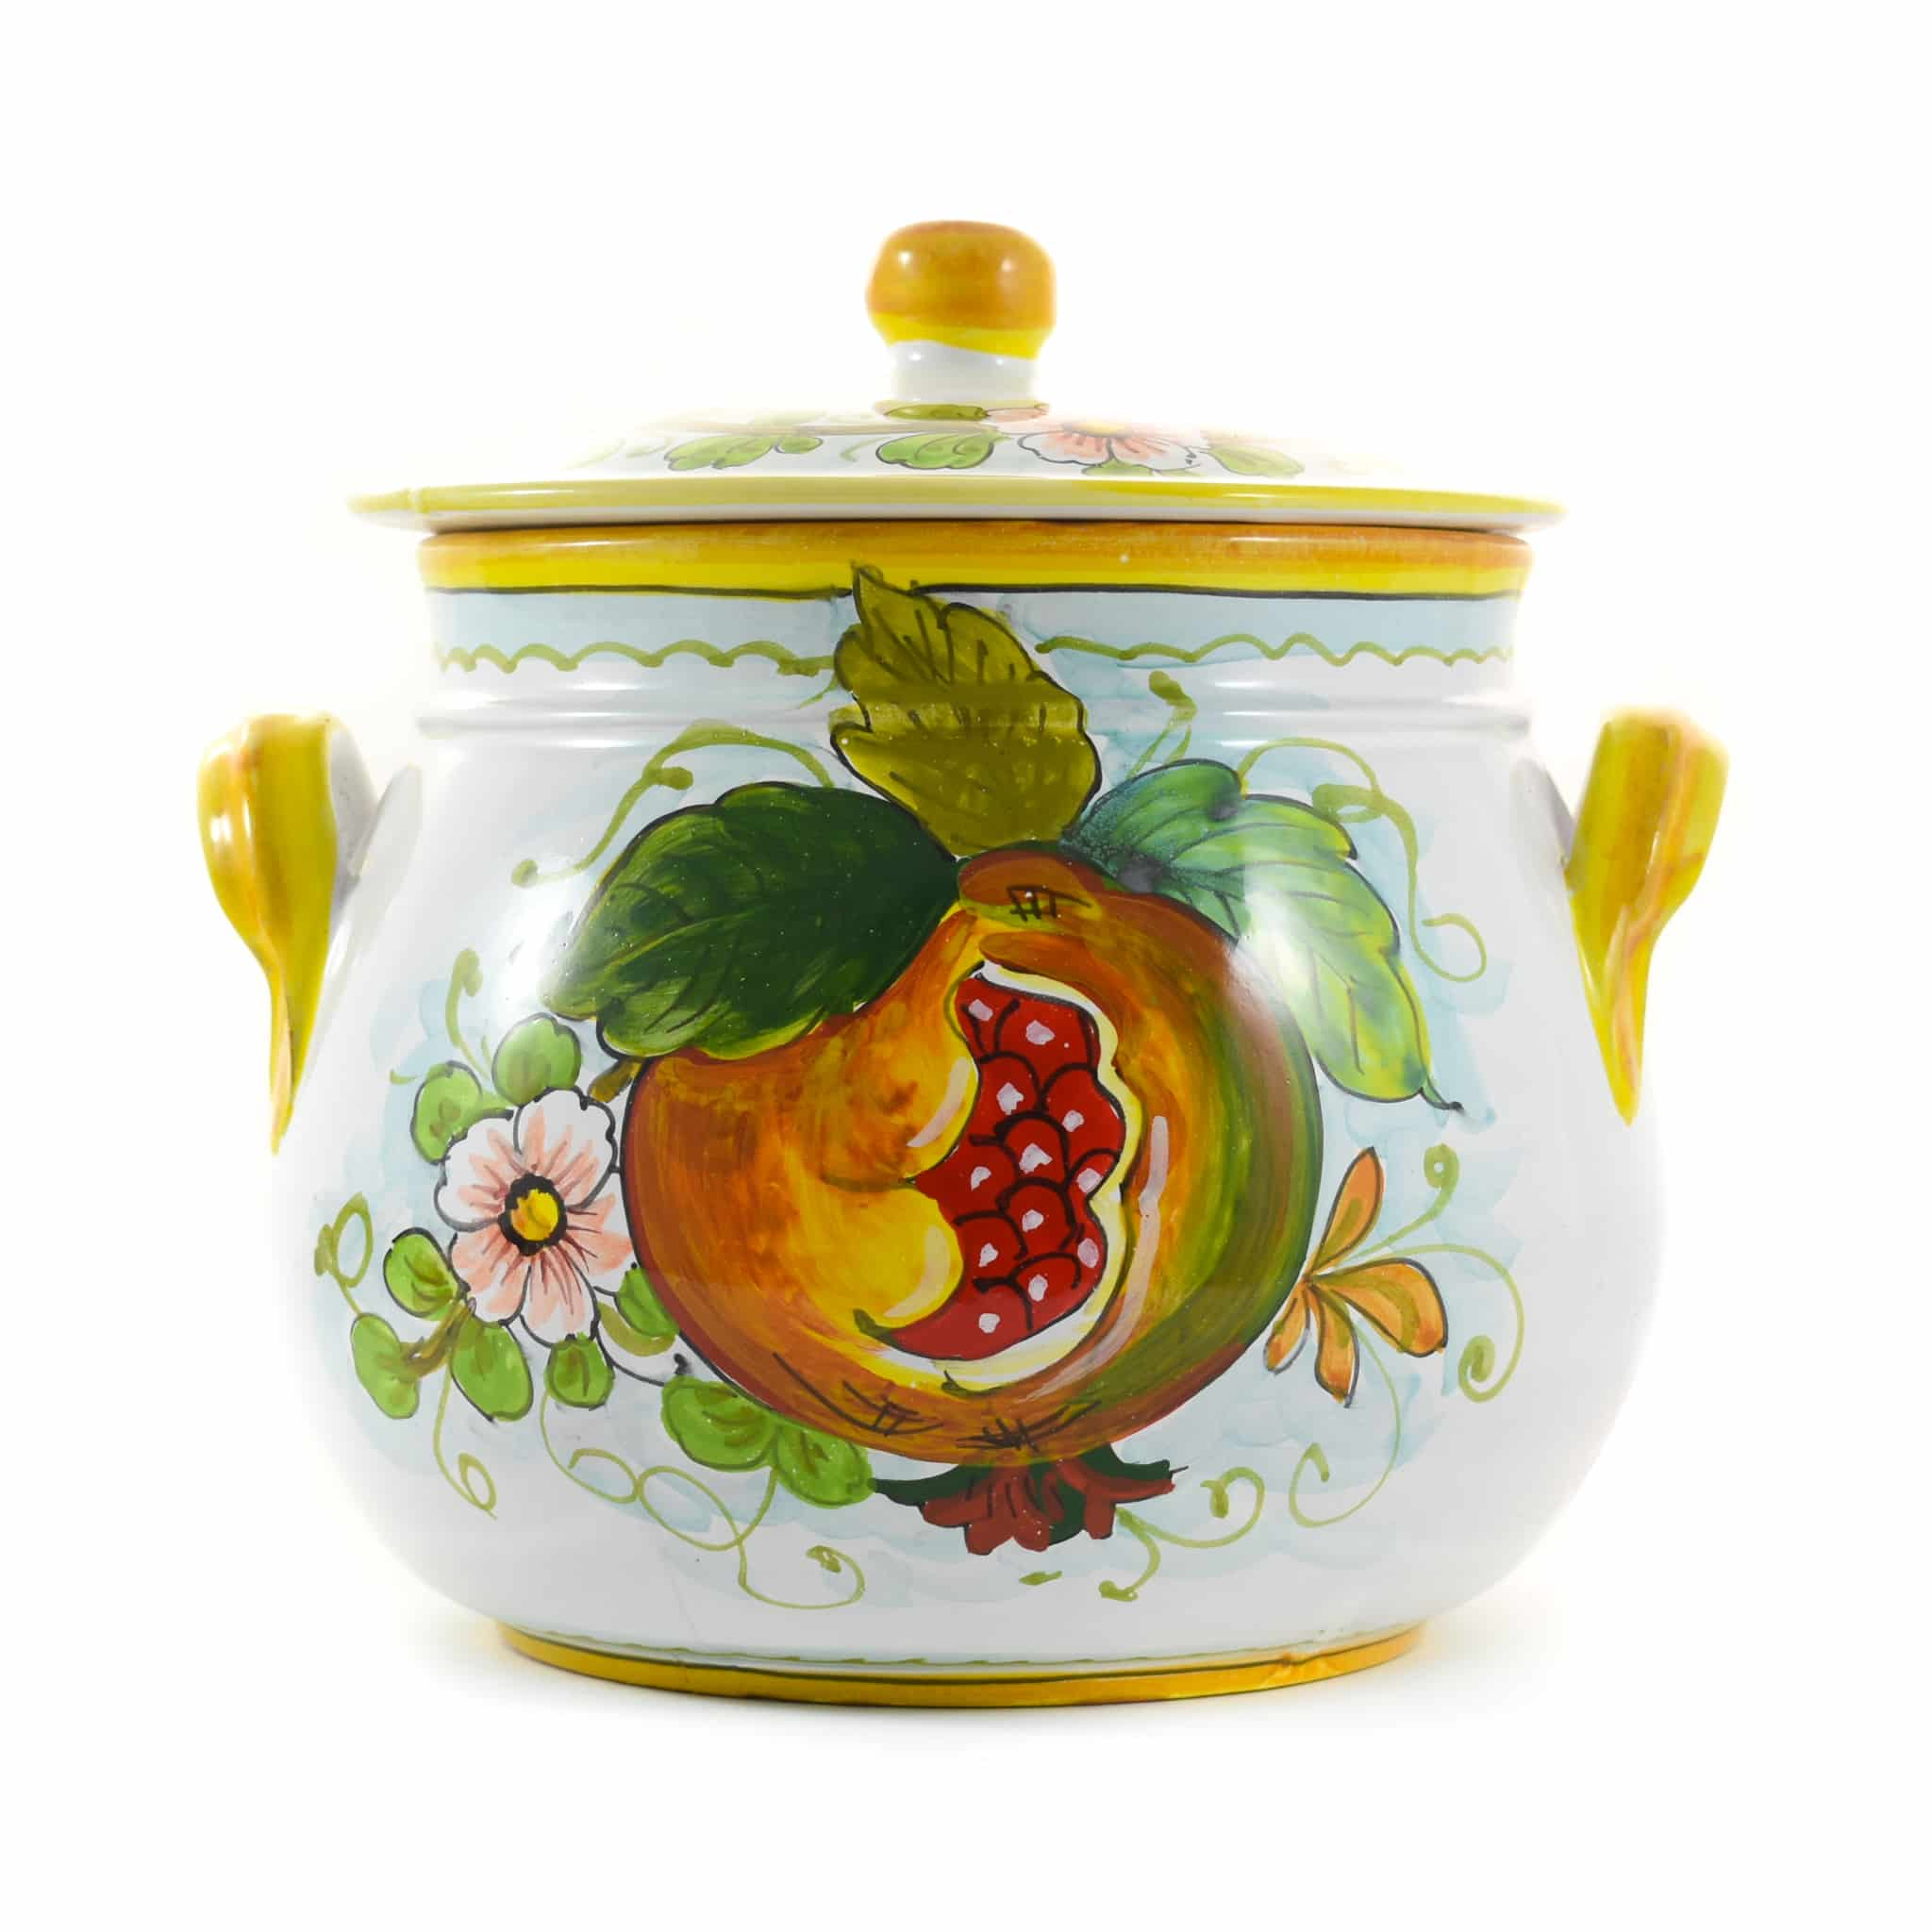 Pomegranate-Painted Terracotta Cooking Pot 20cm